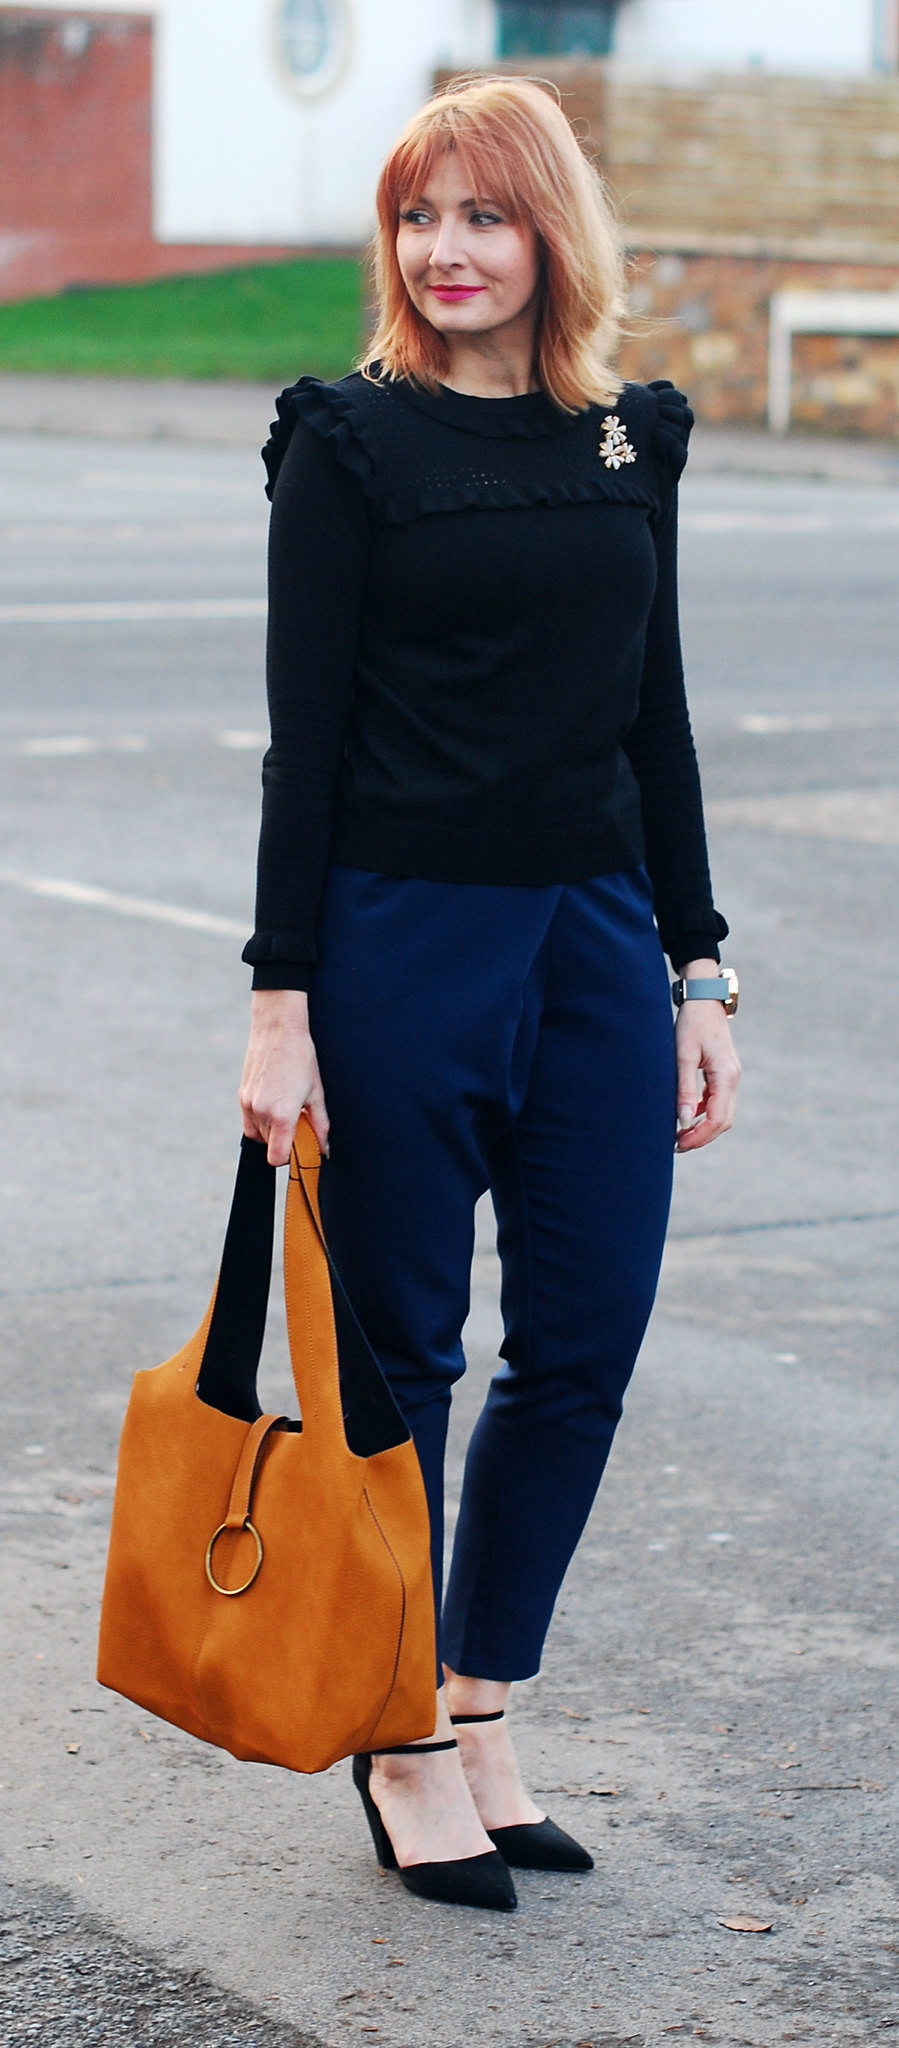 Navy and black together: Navy peg leg trousers \ black ruffled sweater \ black pointed heels \ mustard bucket bag | Not Dressed As Lamb, over 40 style